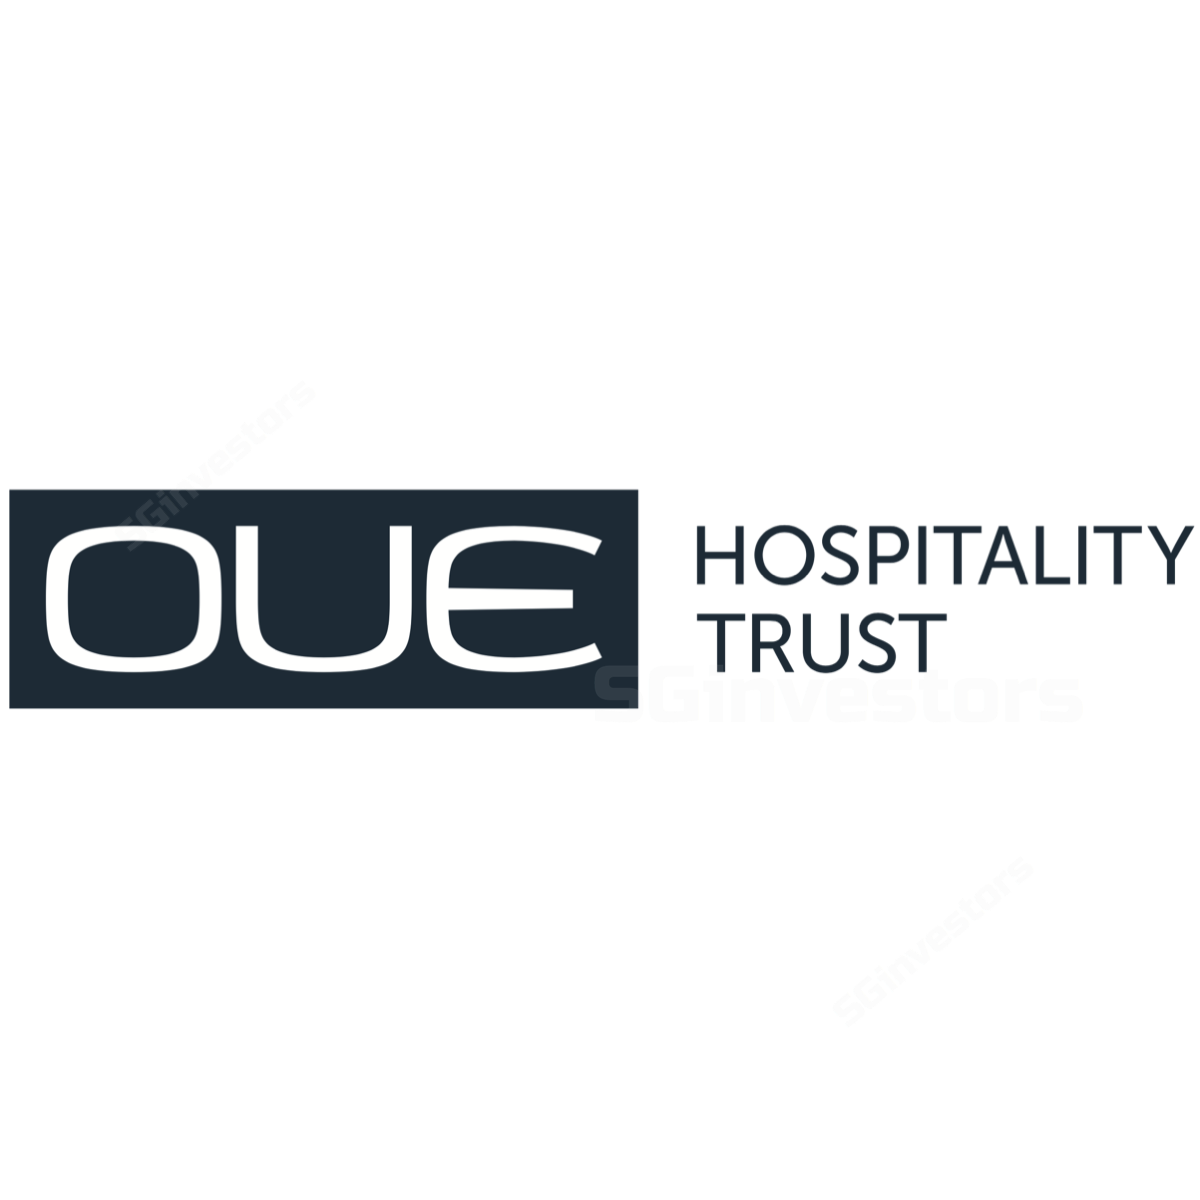 OUE Hospitality Trust - RHB Invest 2017-05-05: Catalysts In Sight, Results In-Line